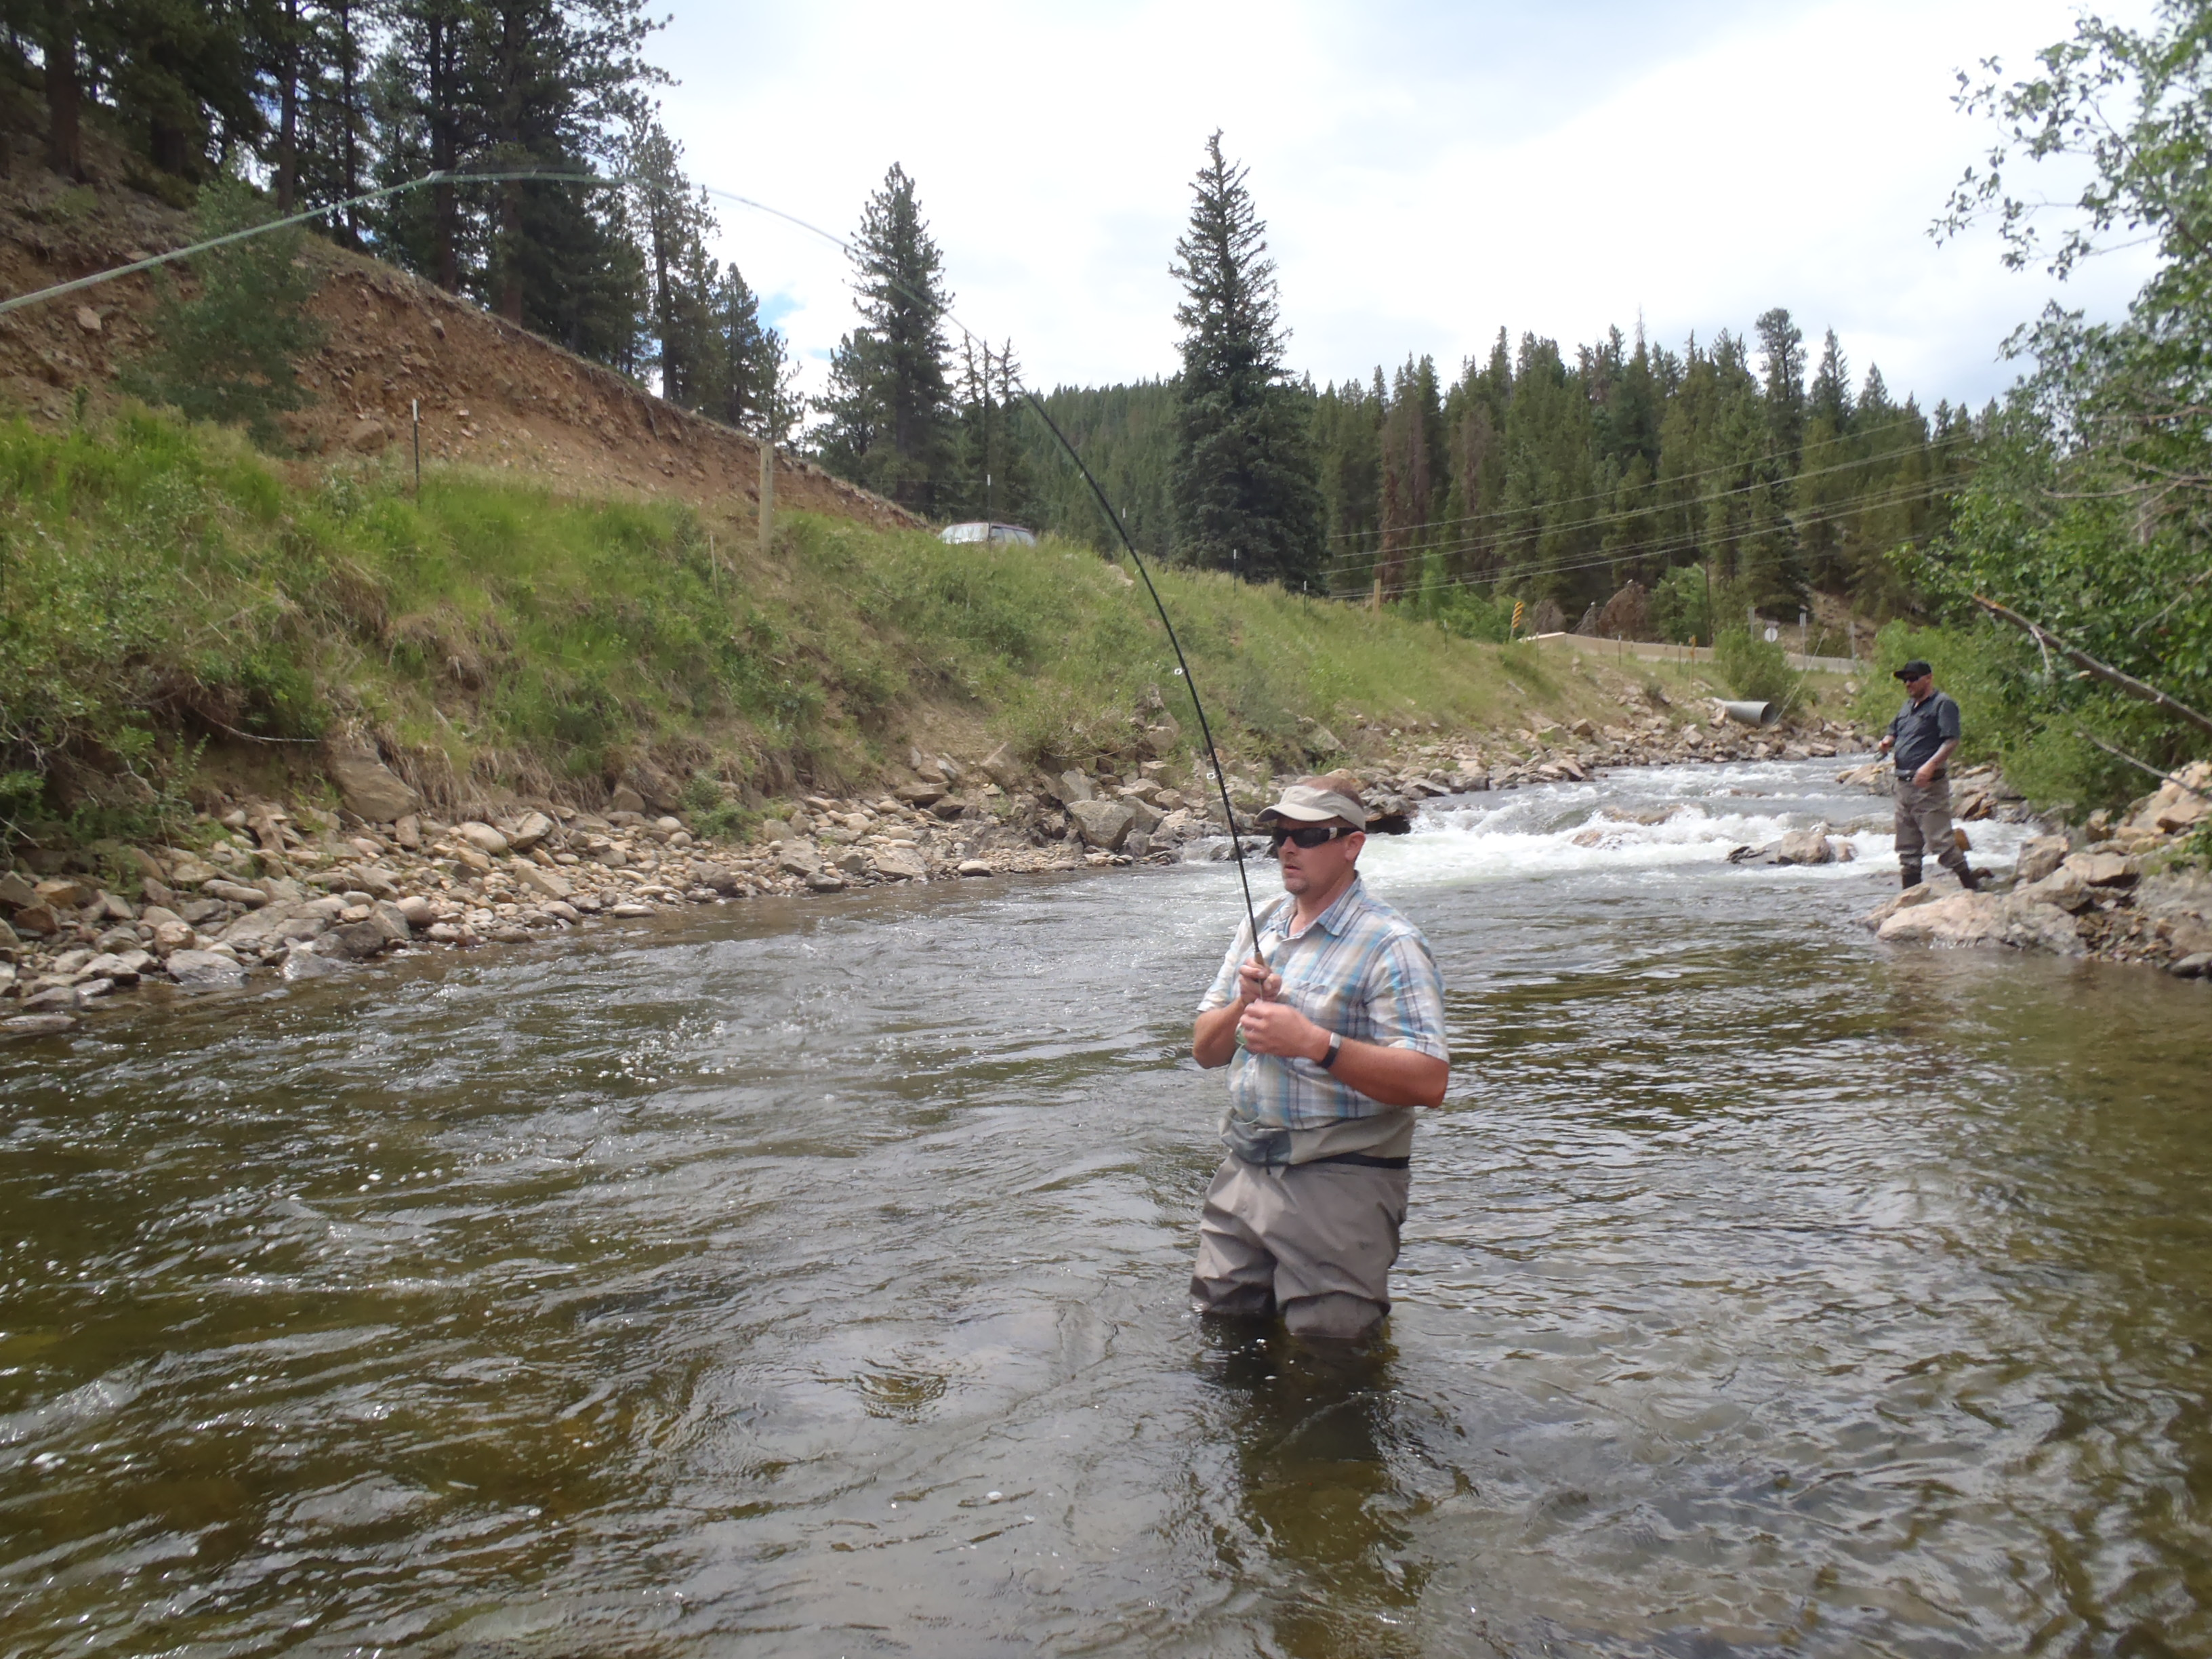 Colorado fly fishing reports guided fishing trip report for Colorado fly fishing reports